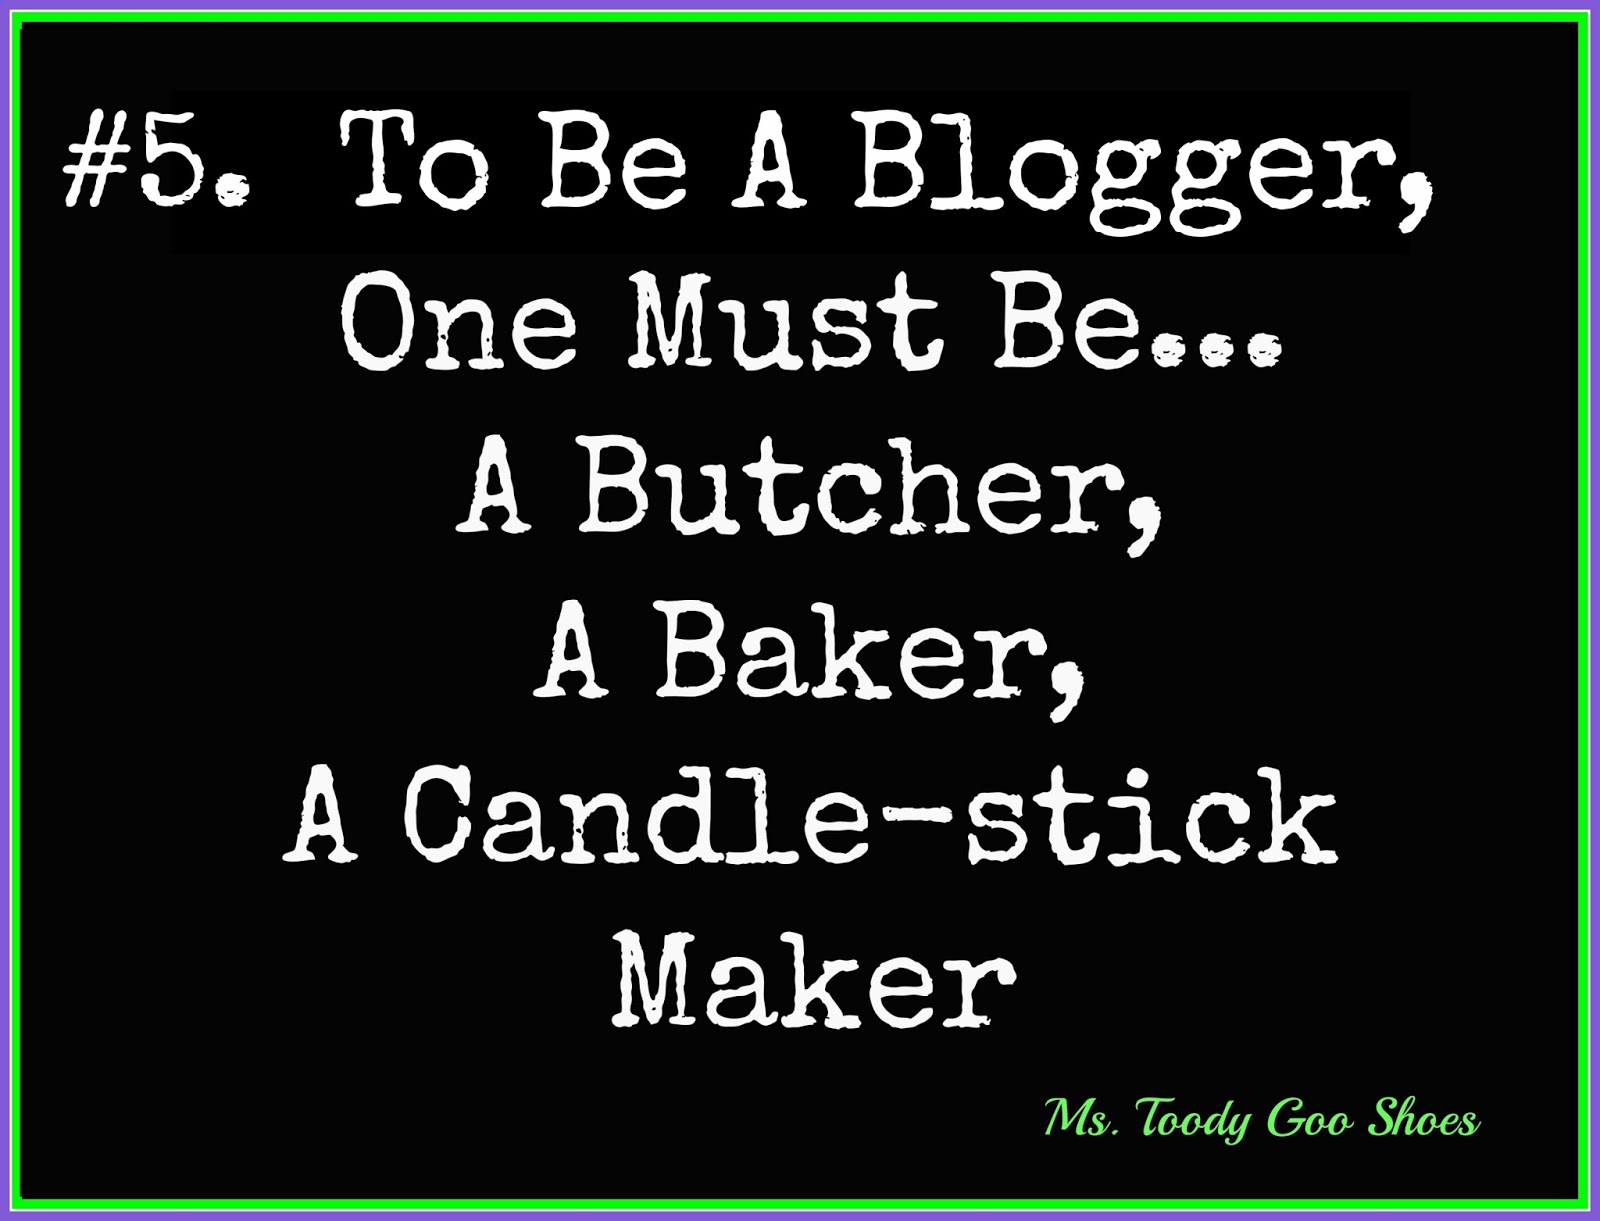 You Can't Frost A Cake With Mod Podge, and Other Things I've Learned From Blogging by Ms. Toody Goo Shoes